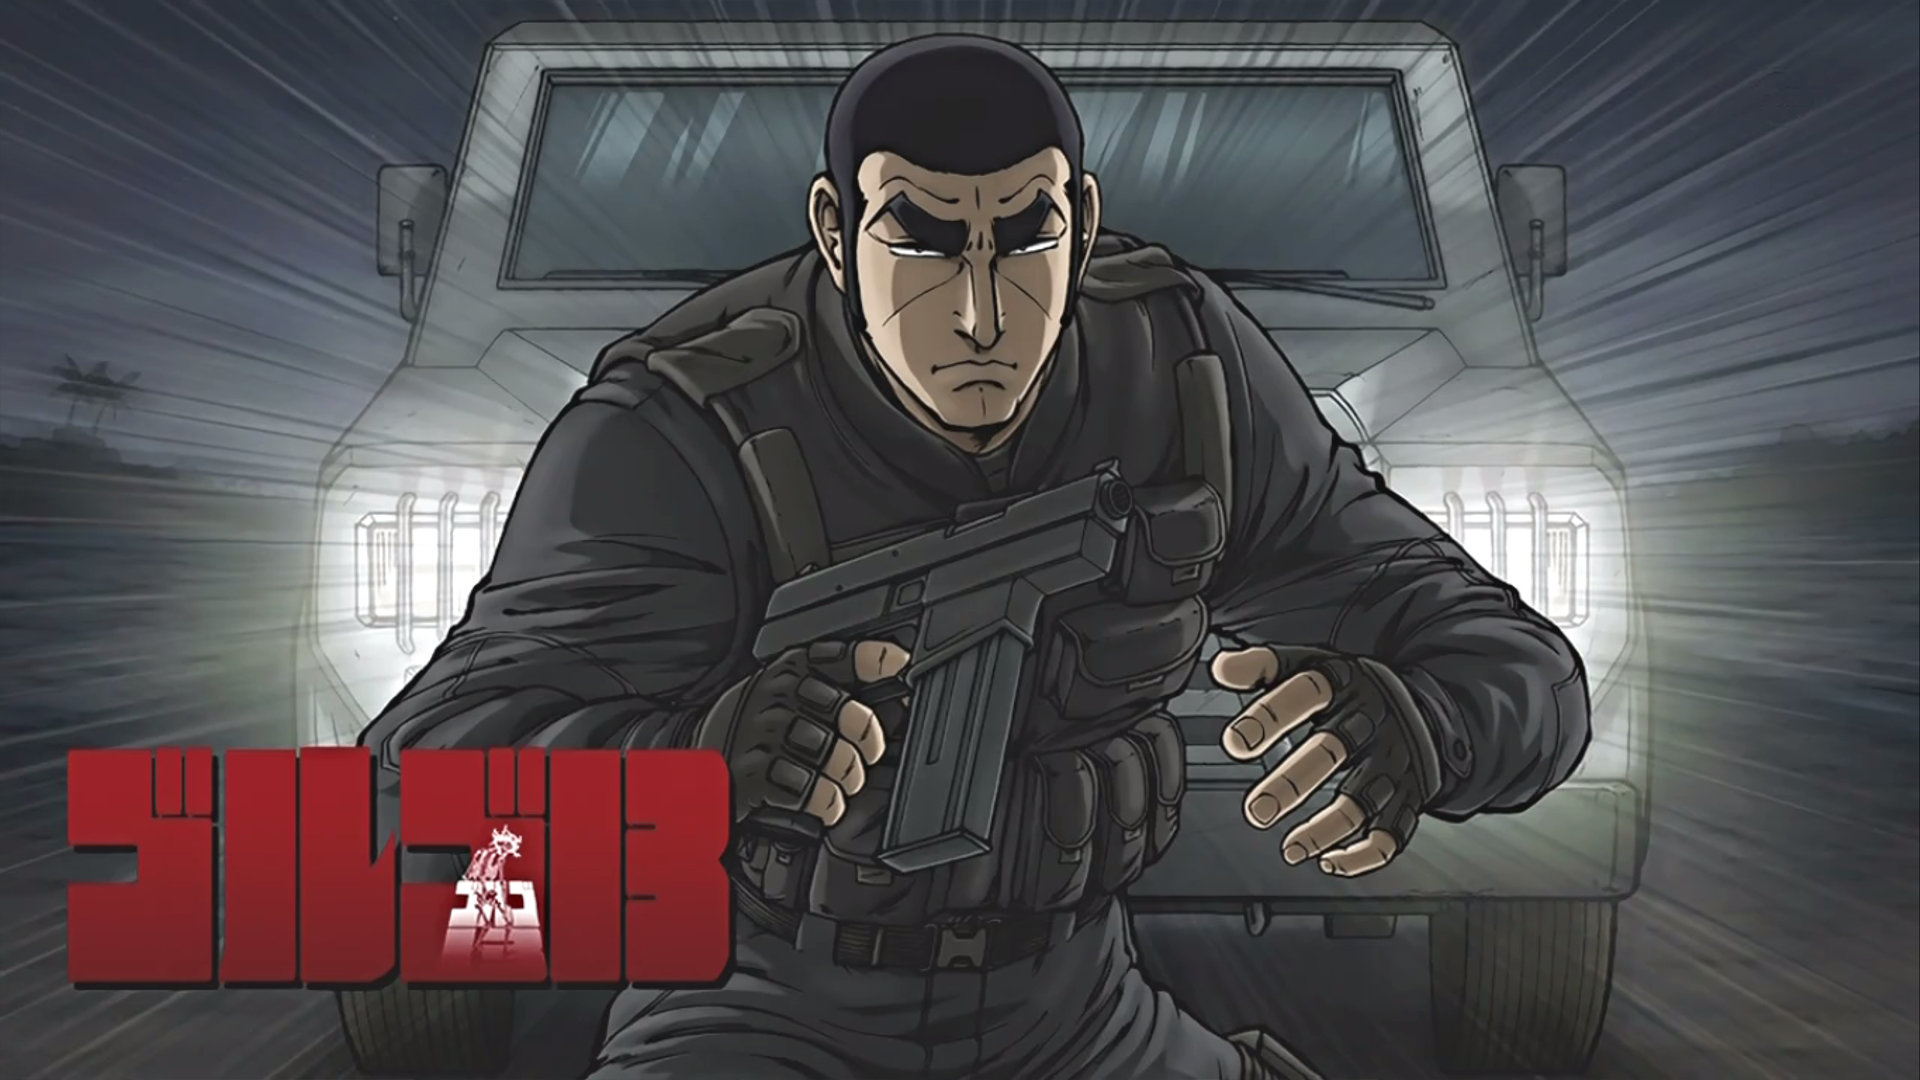 Download full hd Golgo 13 PC wallpaper ID:144521 for free